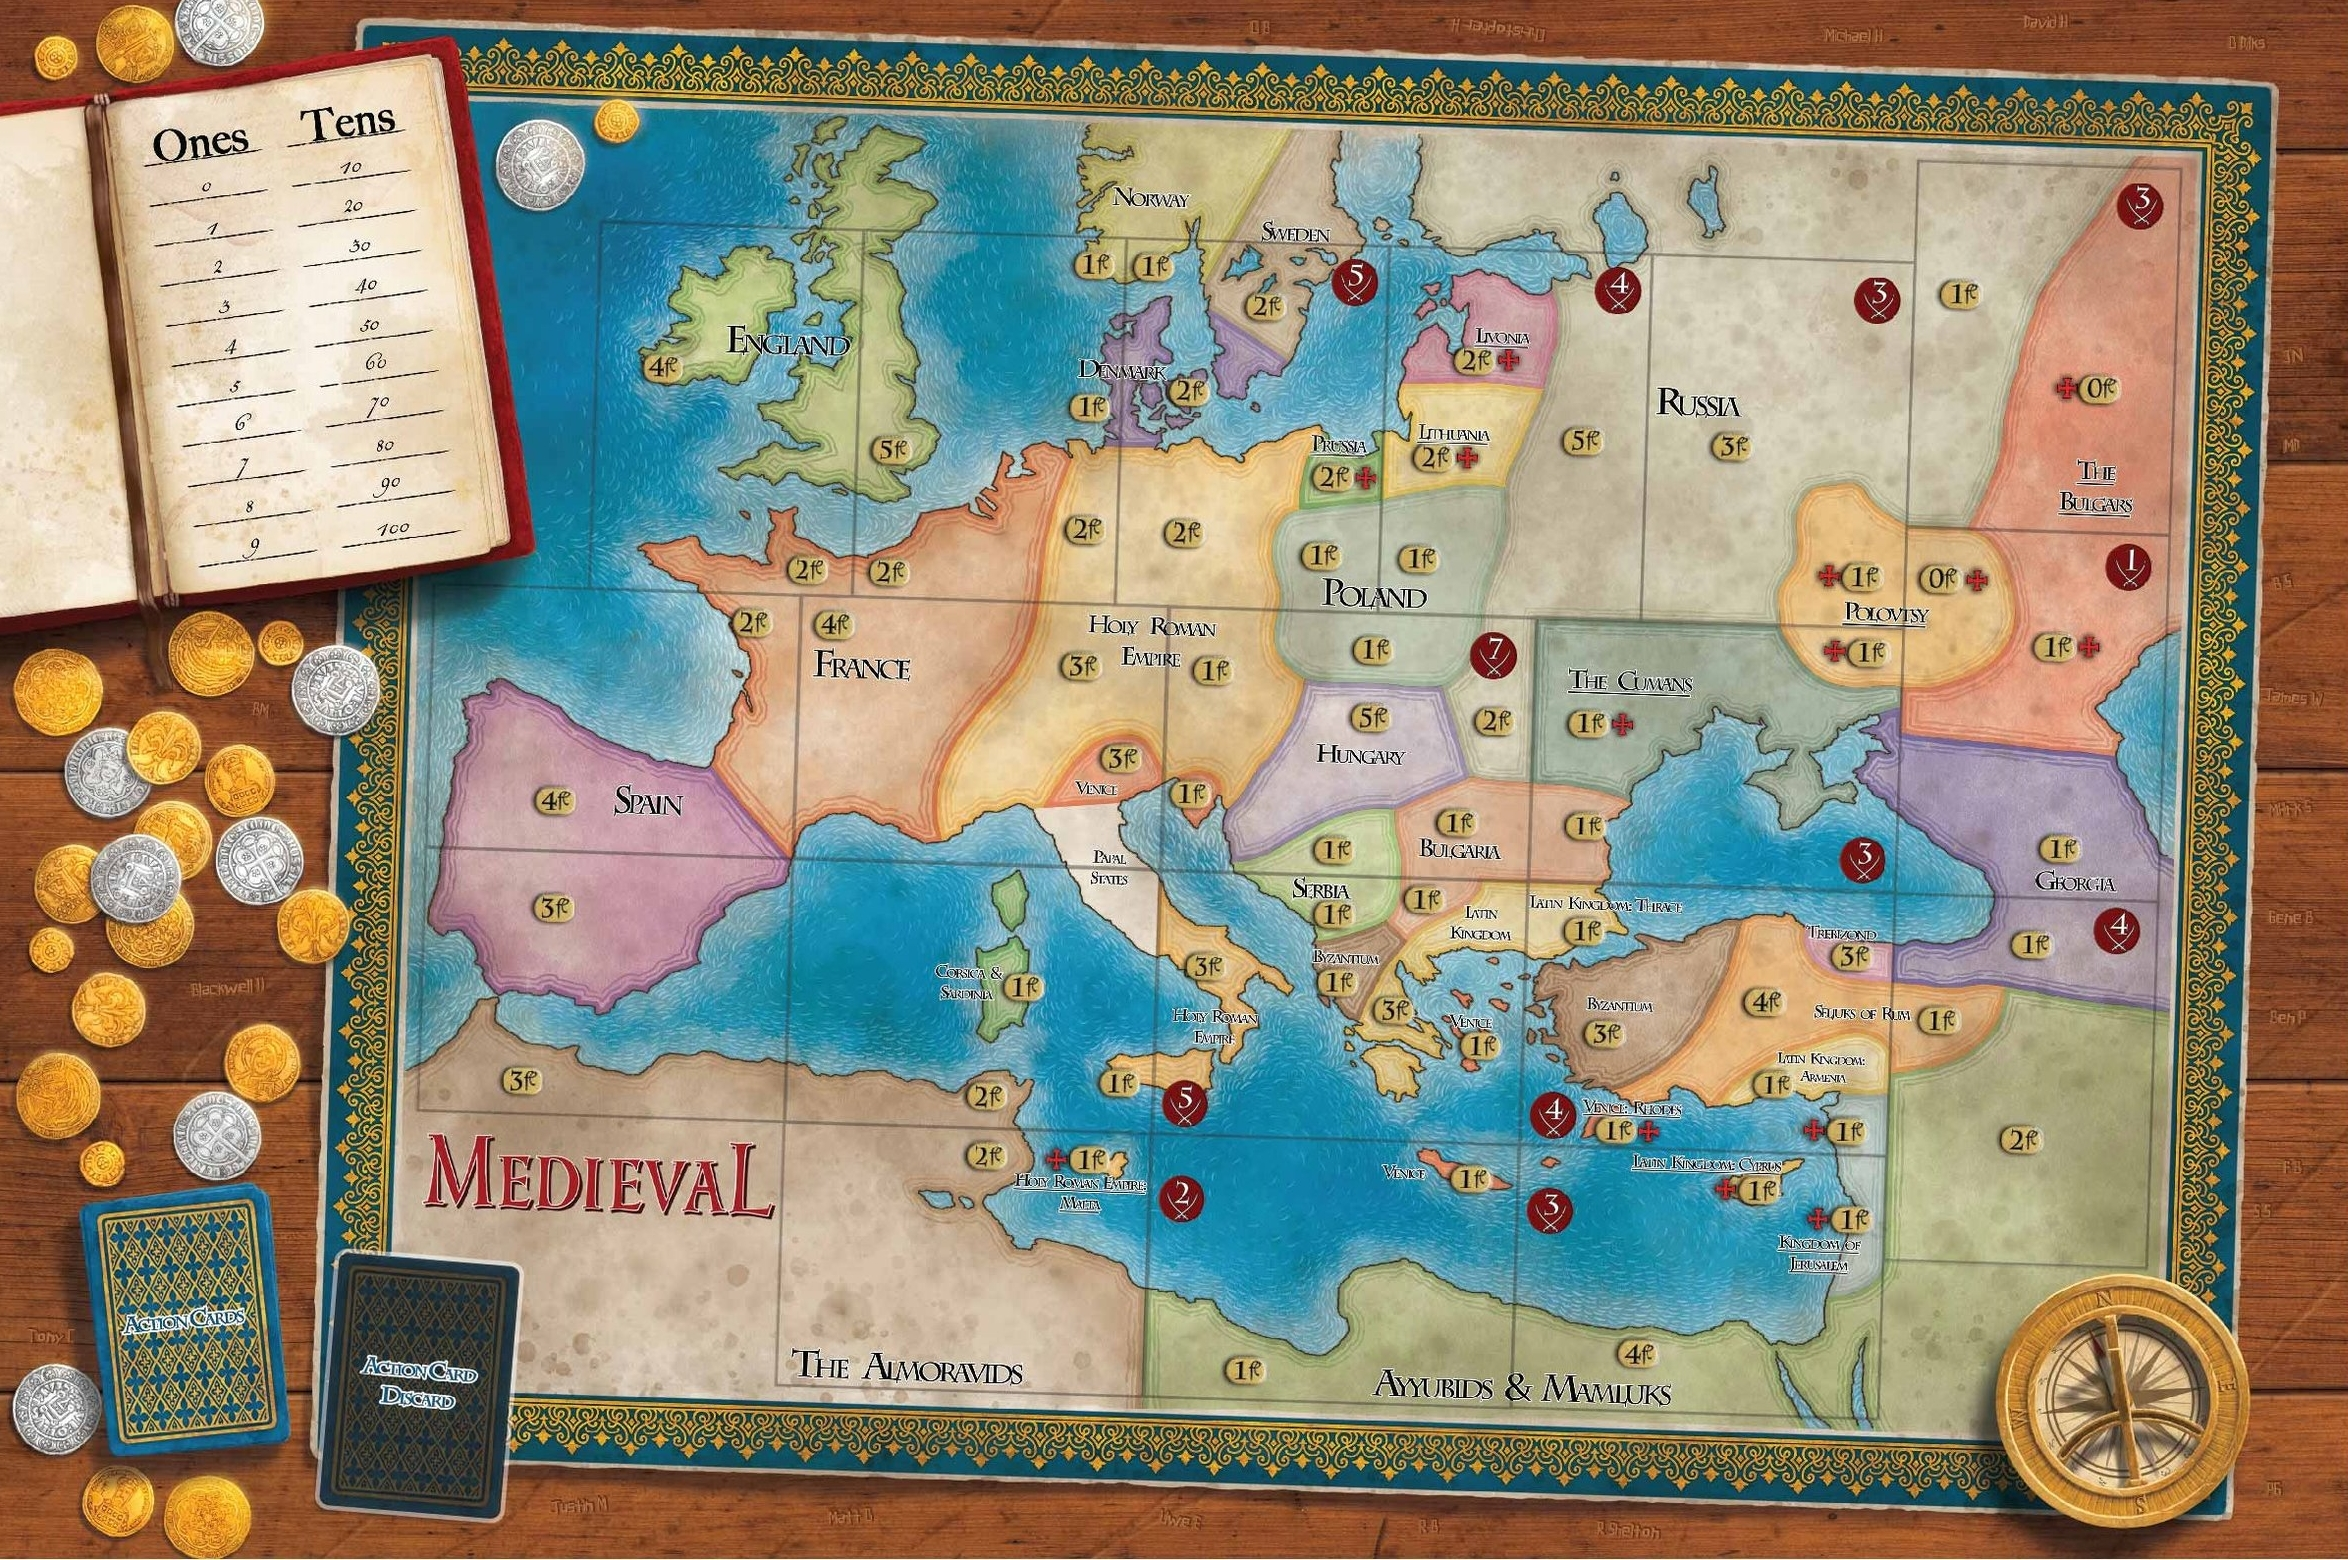 Get Medieval on Game Night - Wage war, unleash the plague, excommunicate the unworthy, and drive back the Mongol hordes.Medieval is a strategy board game designed for 2-6 players and plays in less than two hours.